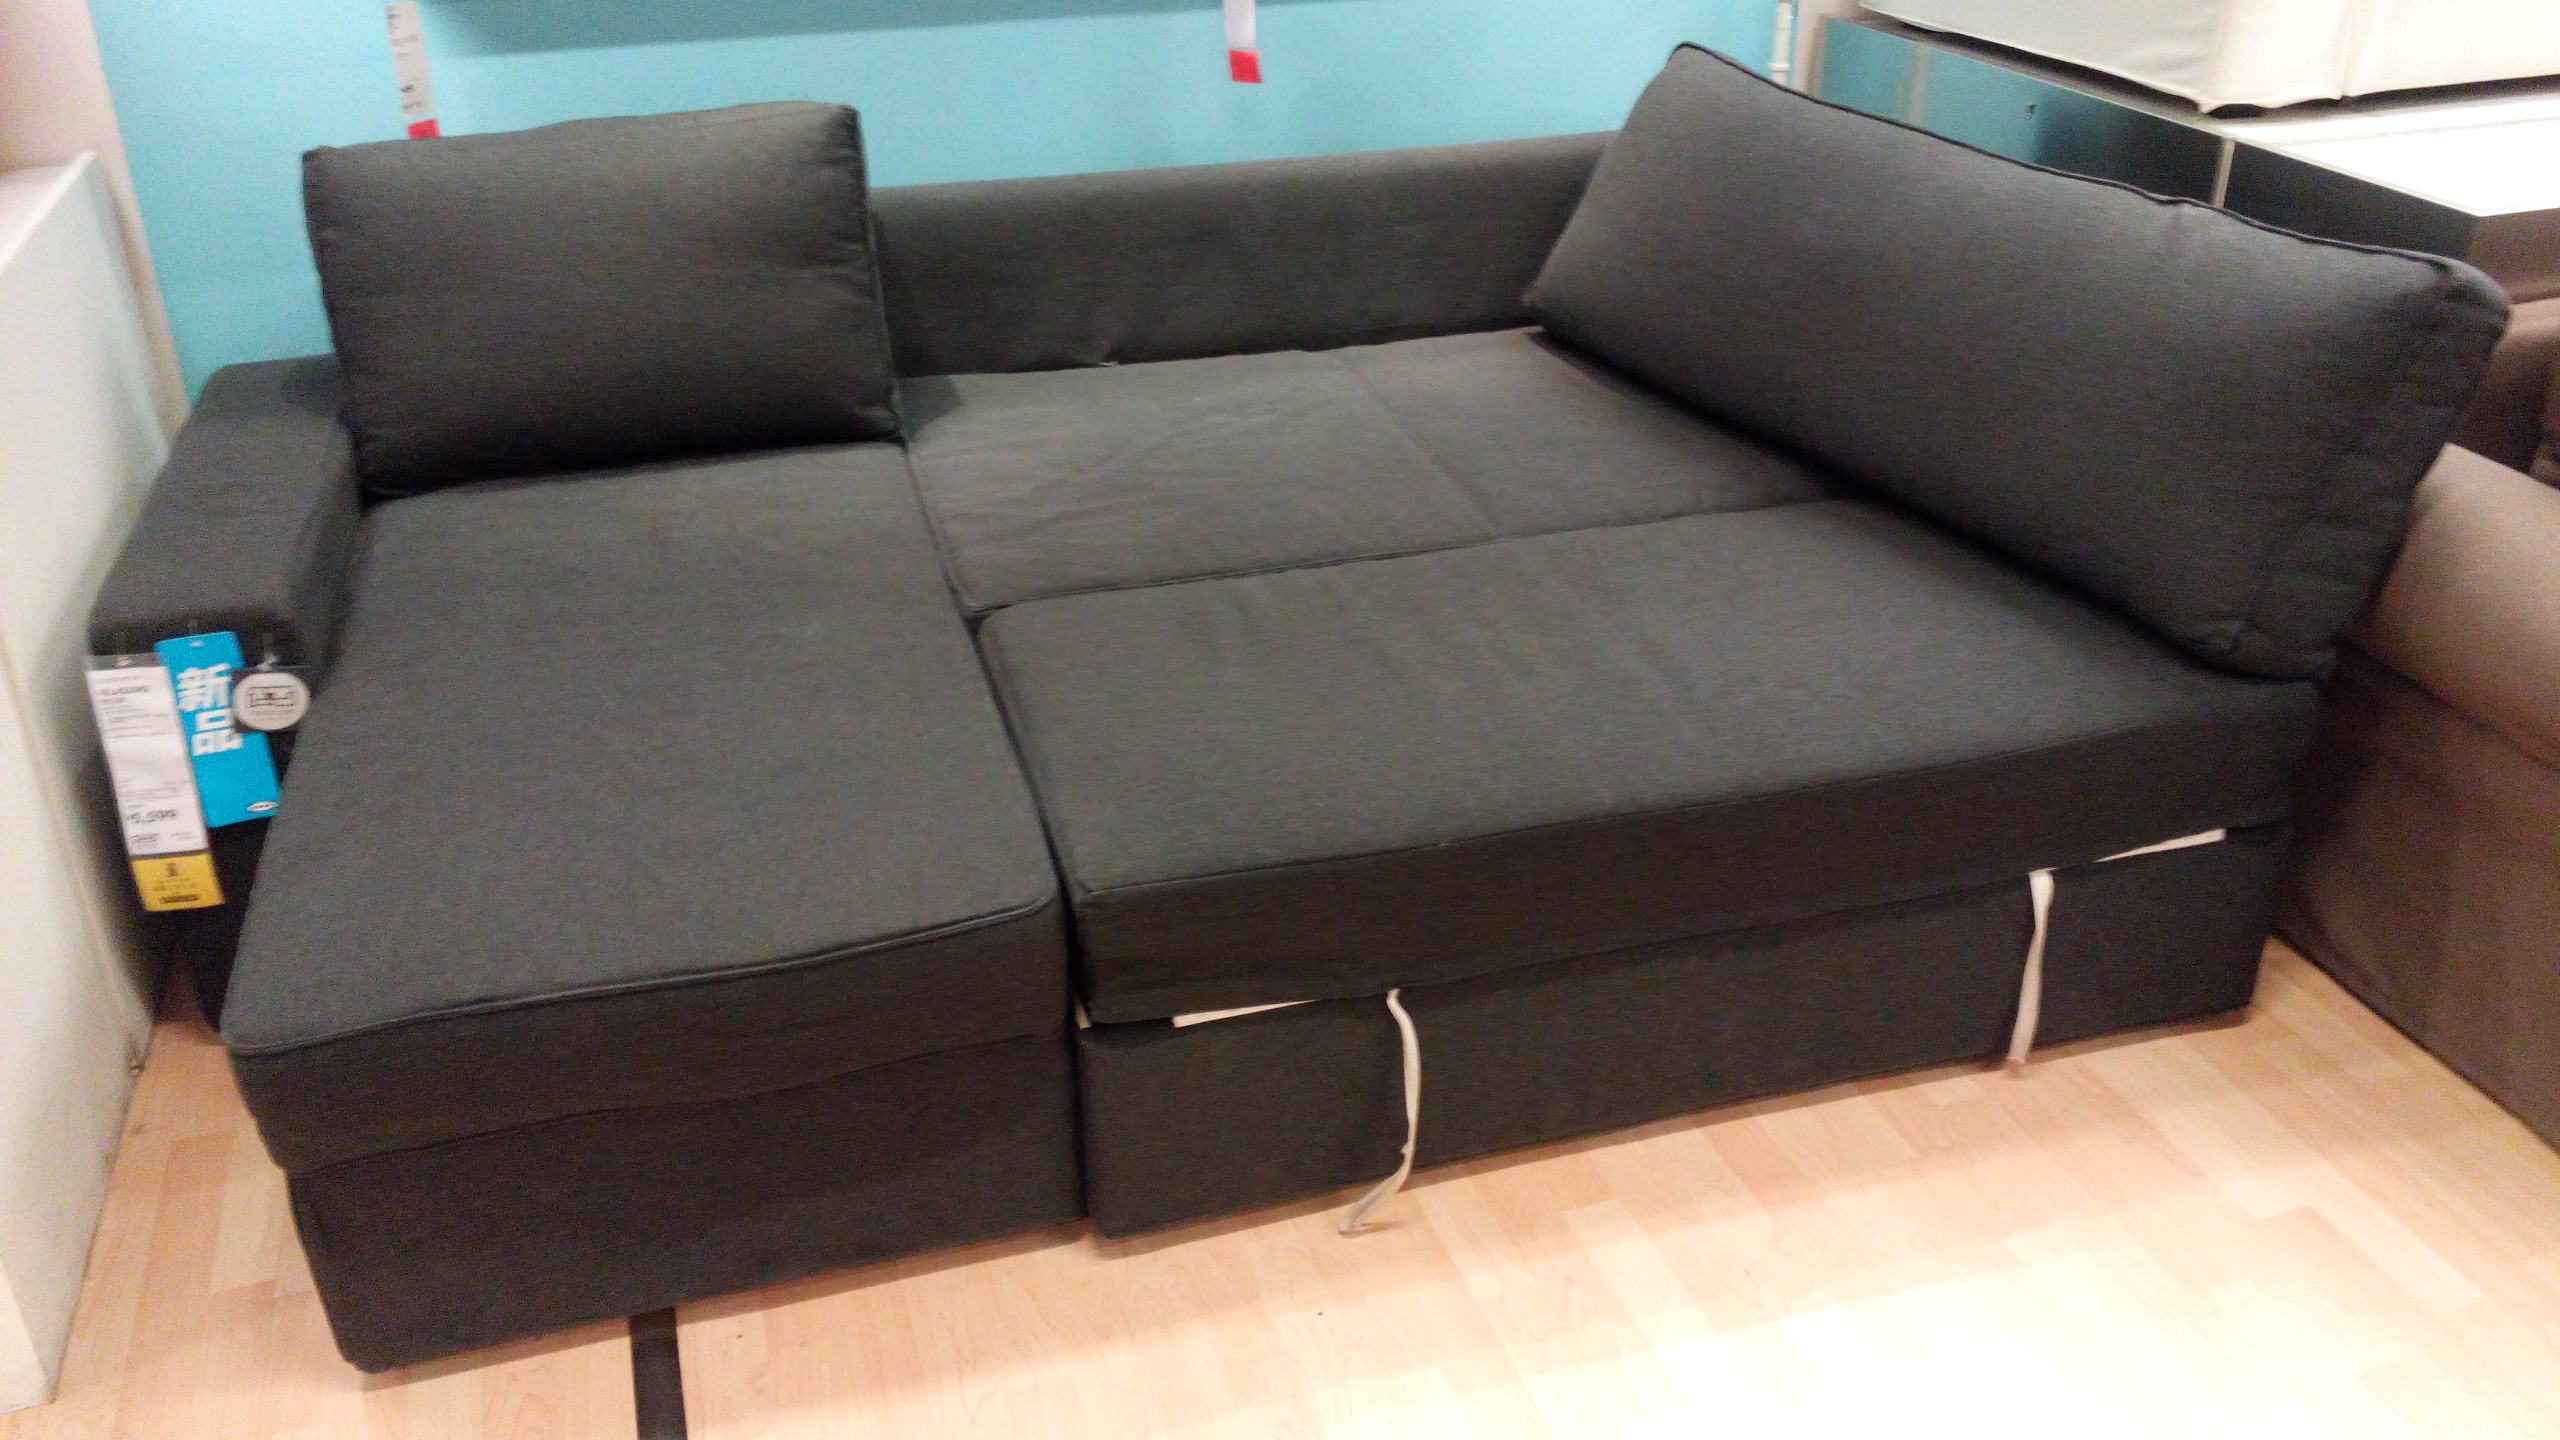 IKEA Introduce New Sofabed That Is Unusable As Both Bed And Sofa | The  Chaser